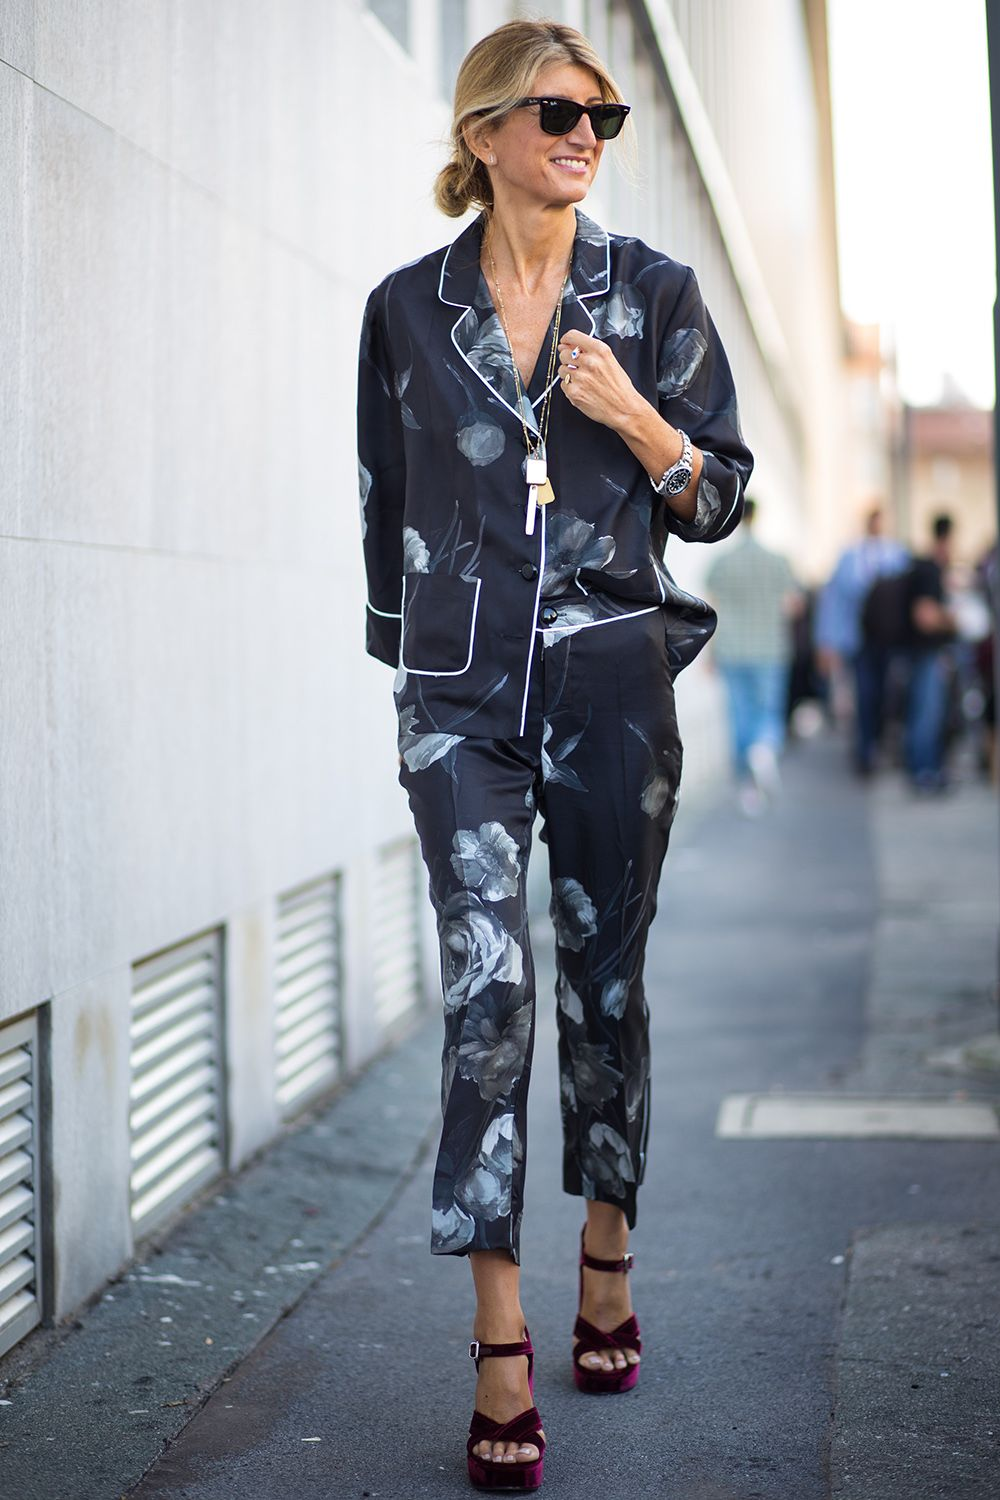 ed3f2fc7b7984 Pyjama outfit inspiration | #fashion A silk printed suit is elevated with  velvet platform heels.